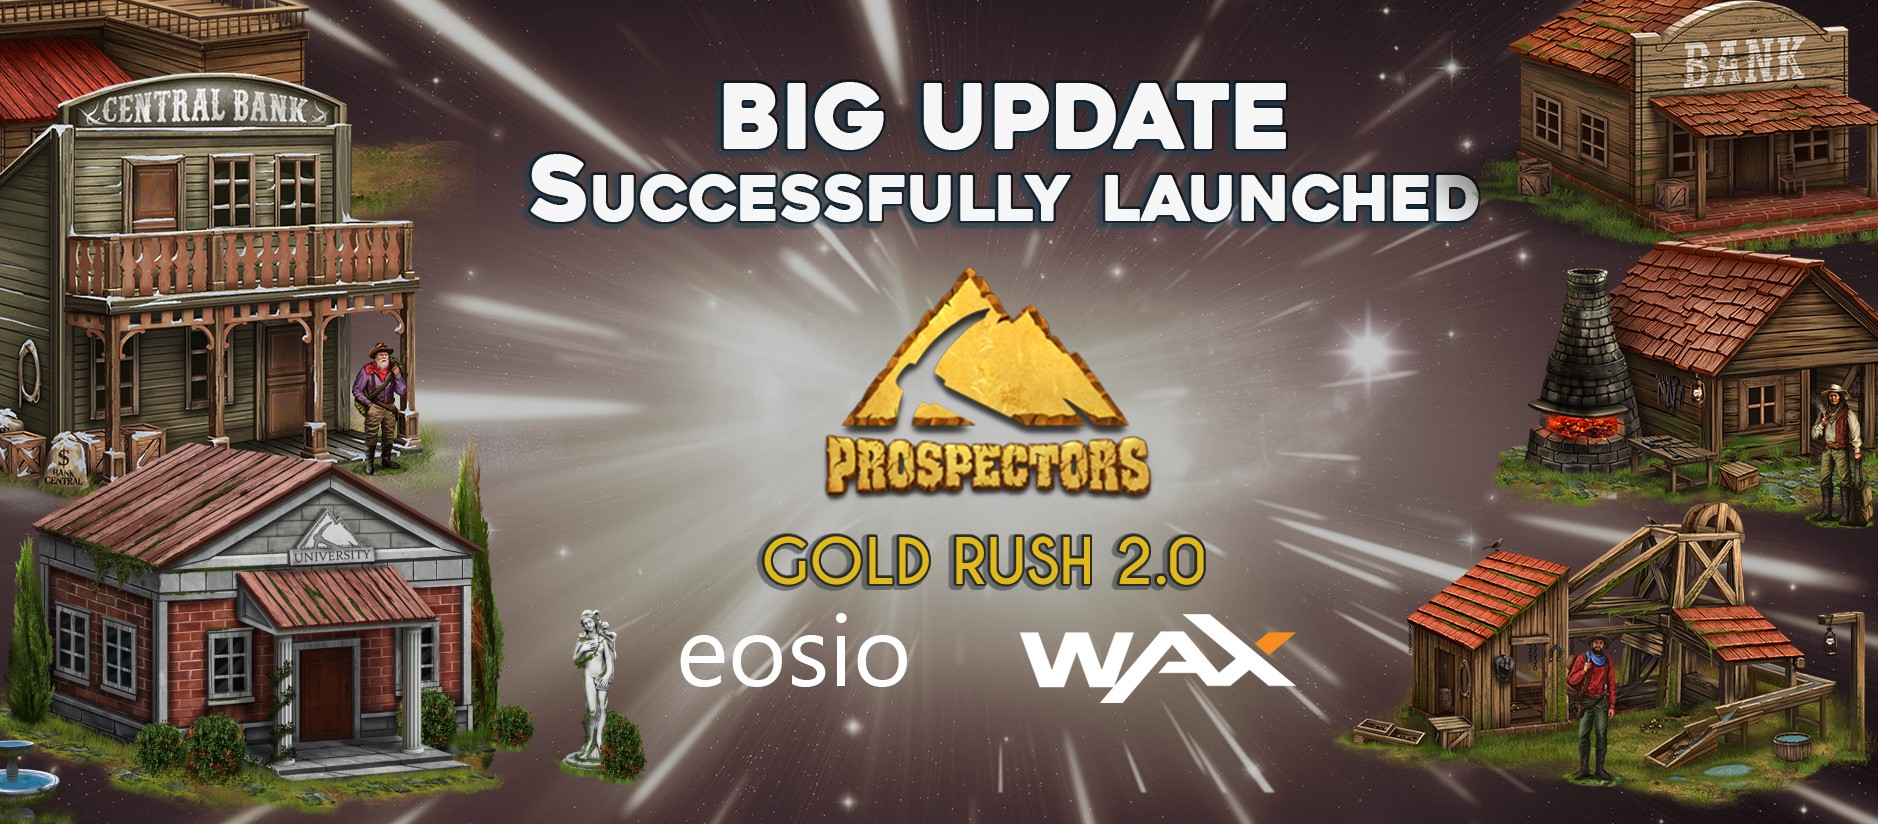 The Prospectors Big Update Successfully launched